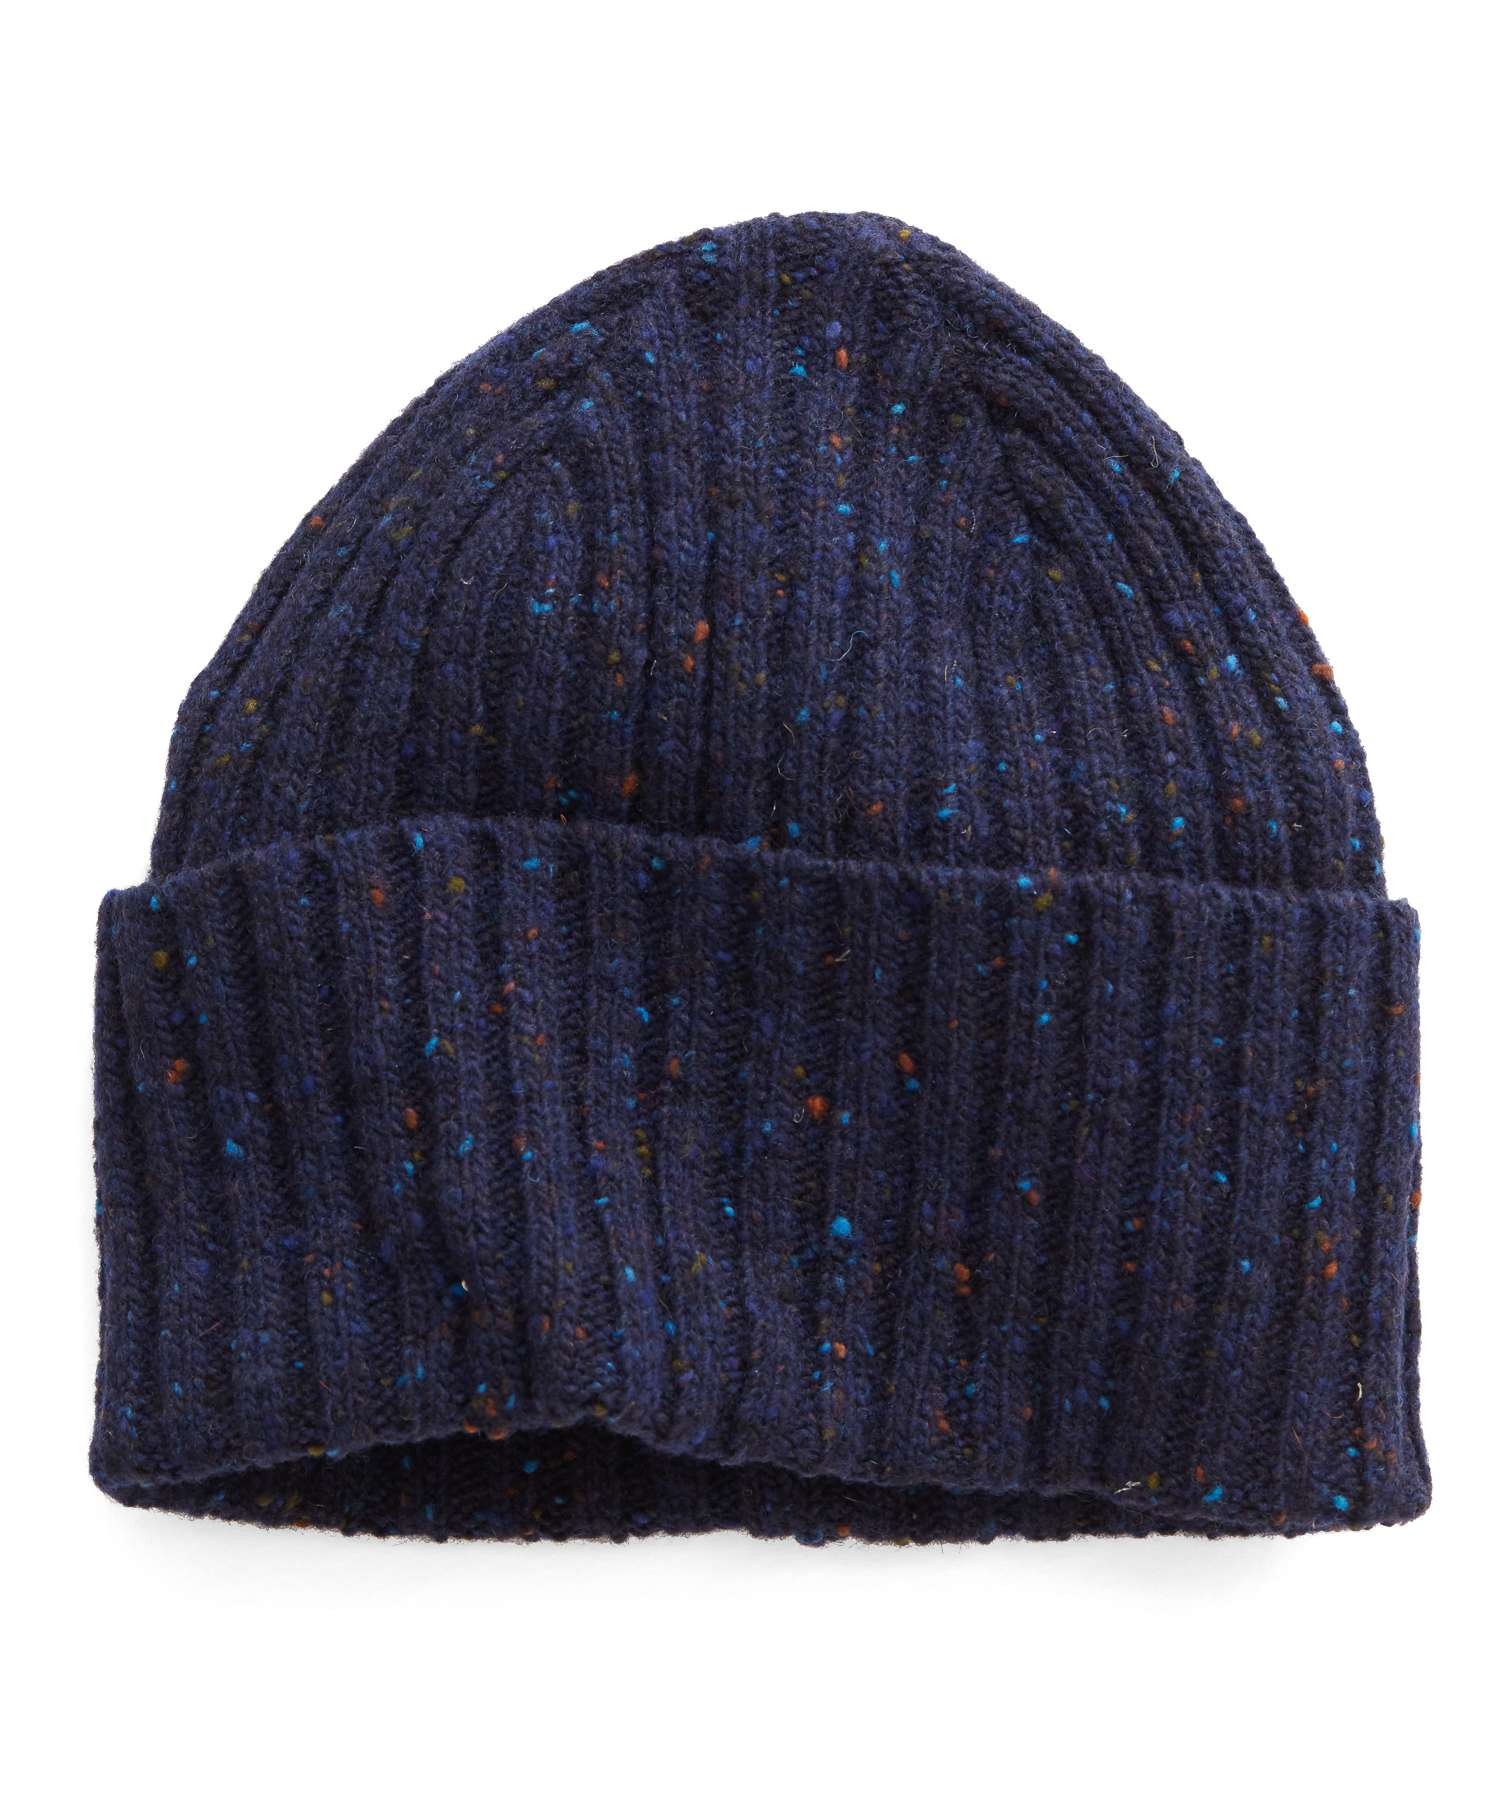 Lyst - Drake s Donegal Wool Hat In Navy in Blue for Men 3362ef419851